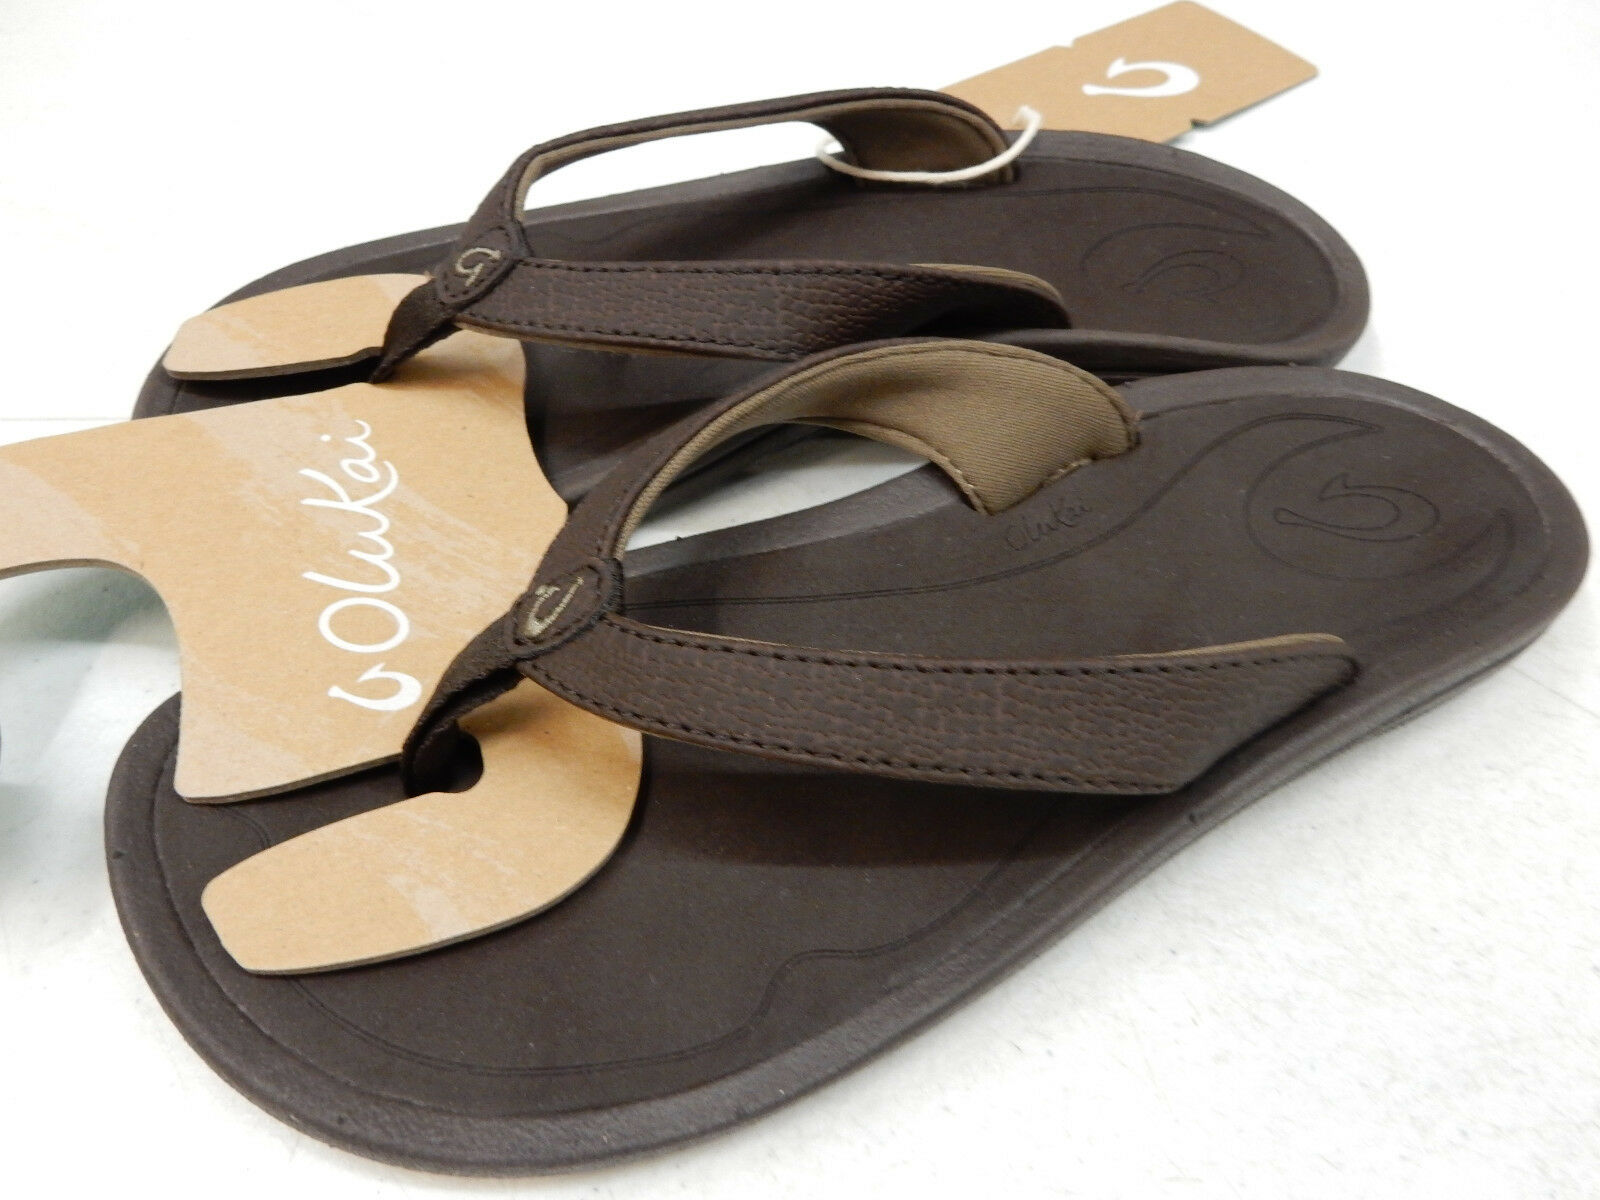 OLUKAI Damenschuhe SANDALS KULAPA KAI DARK JAVA DARK WOOD SIZE 9